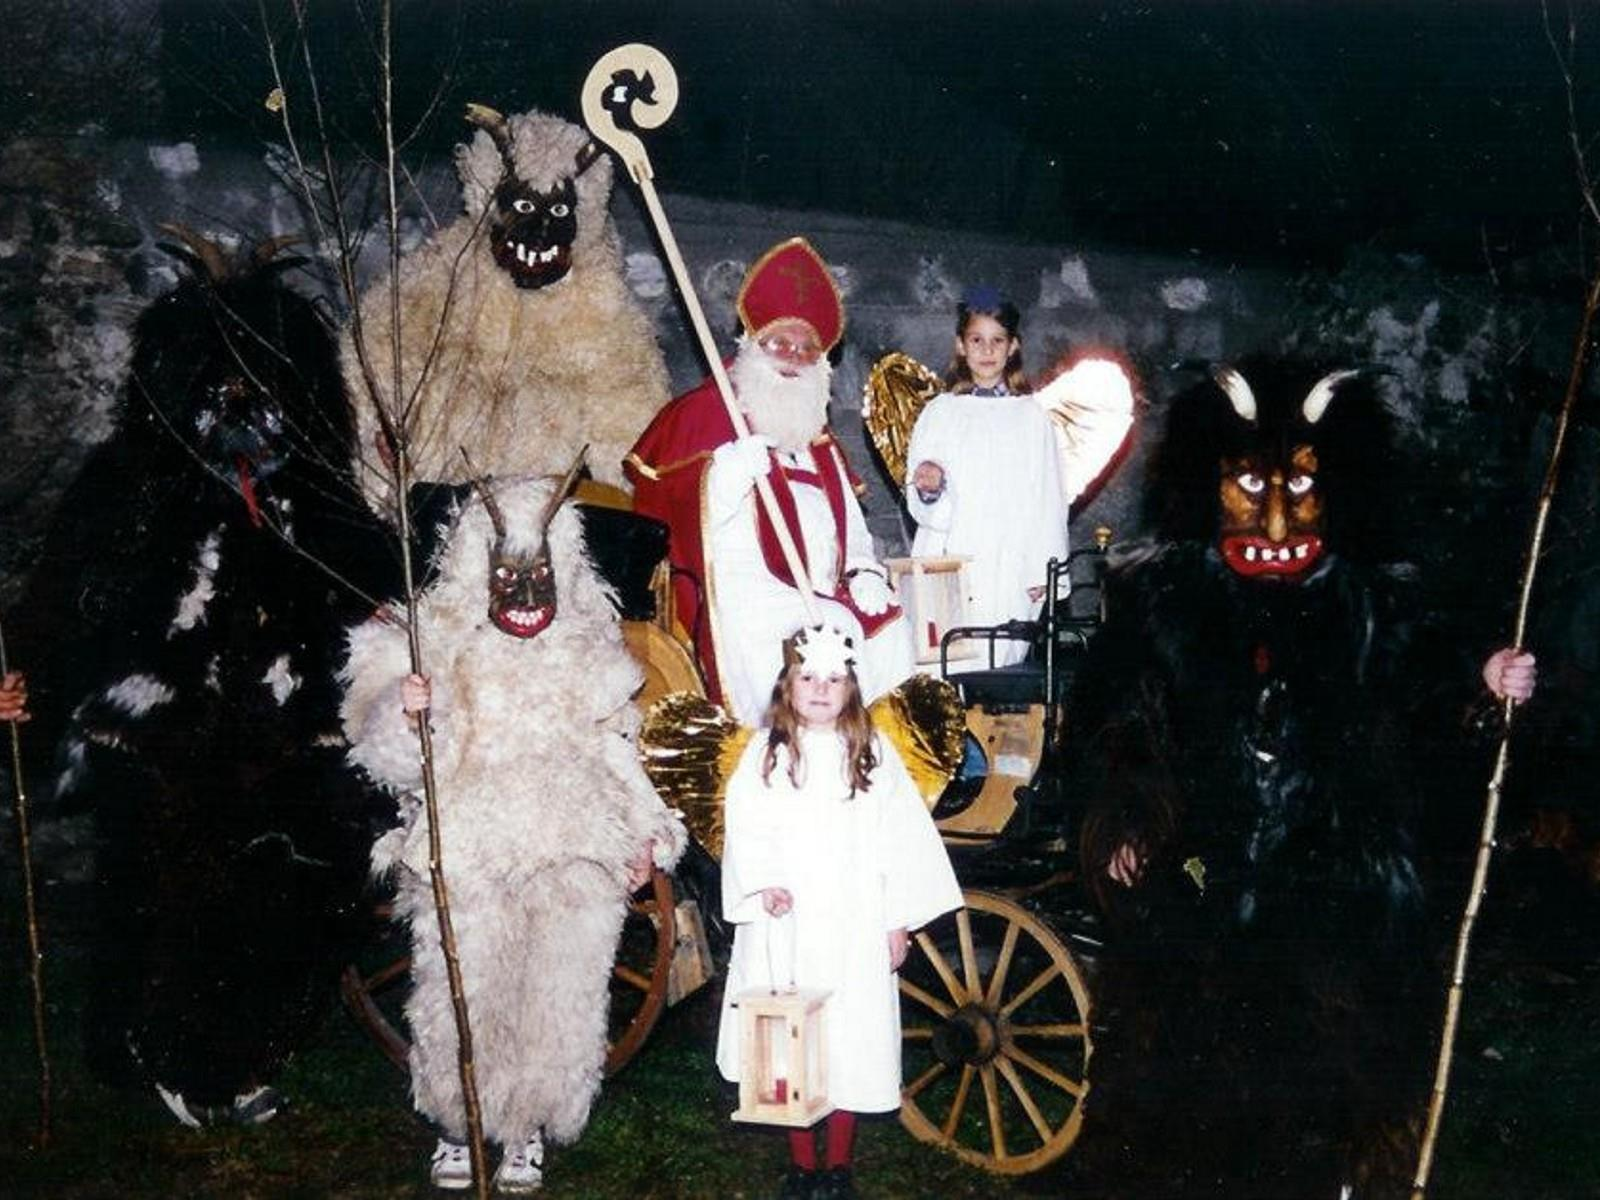 St. Nicholas parade with the devils